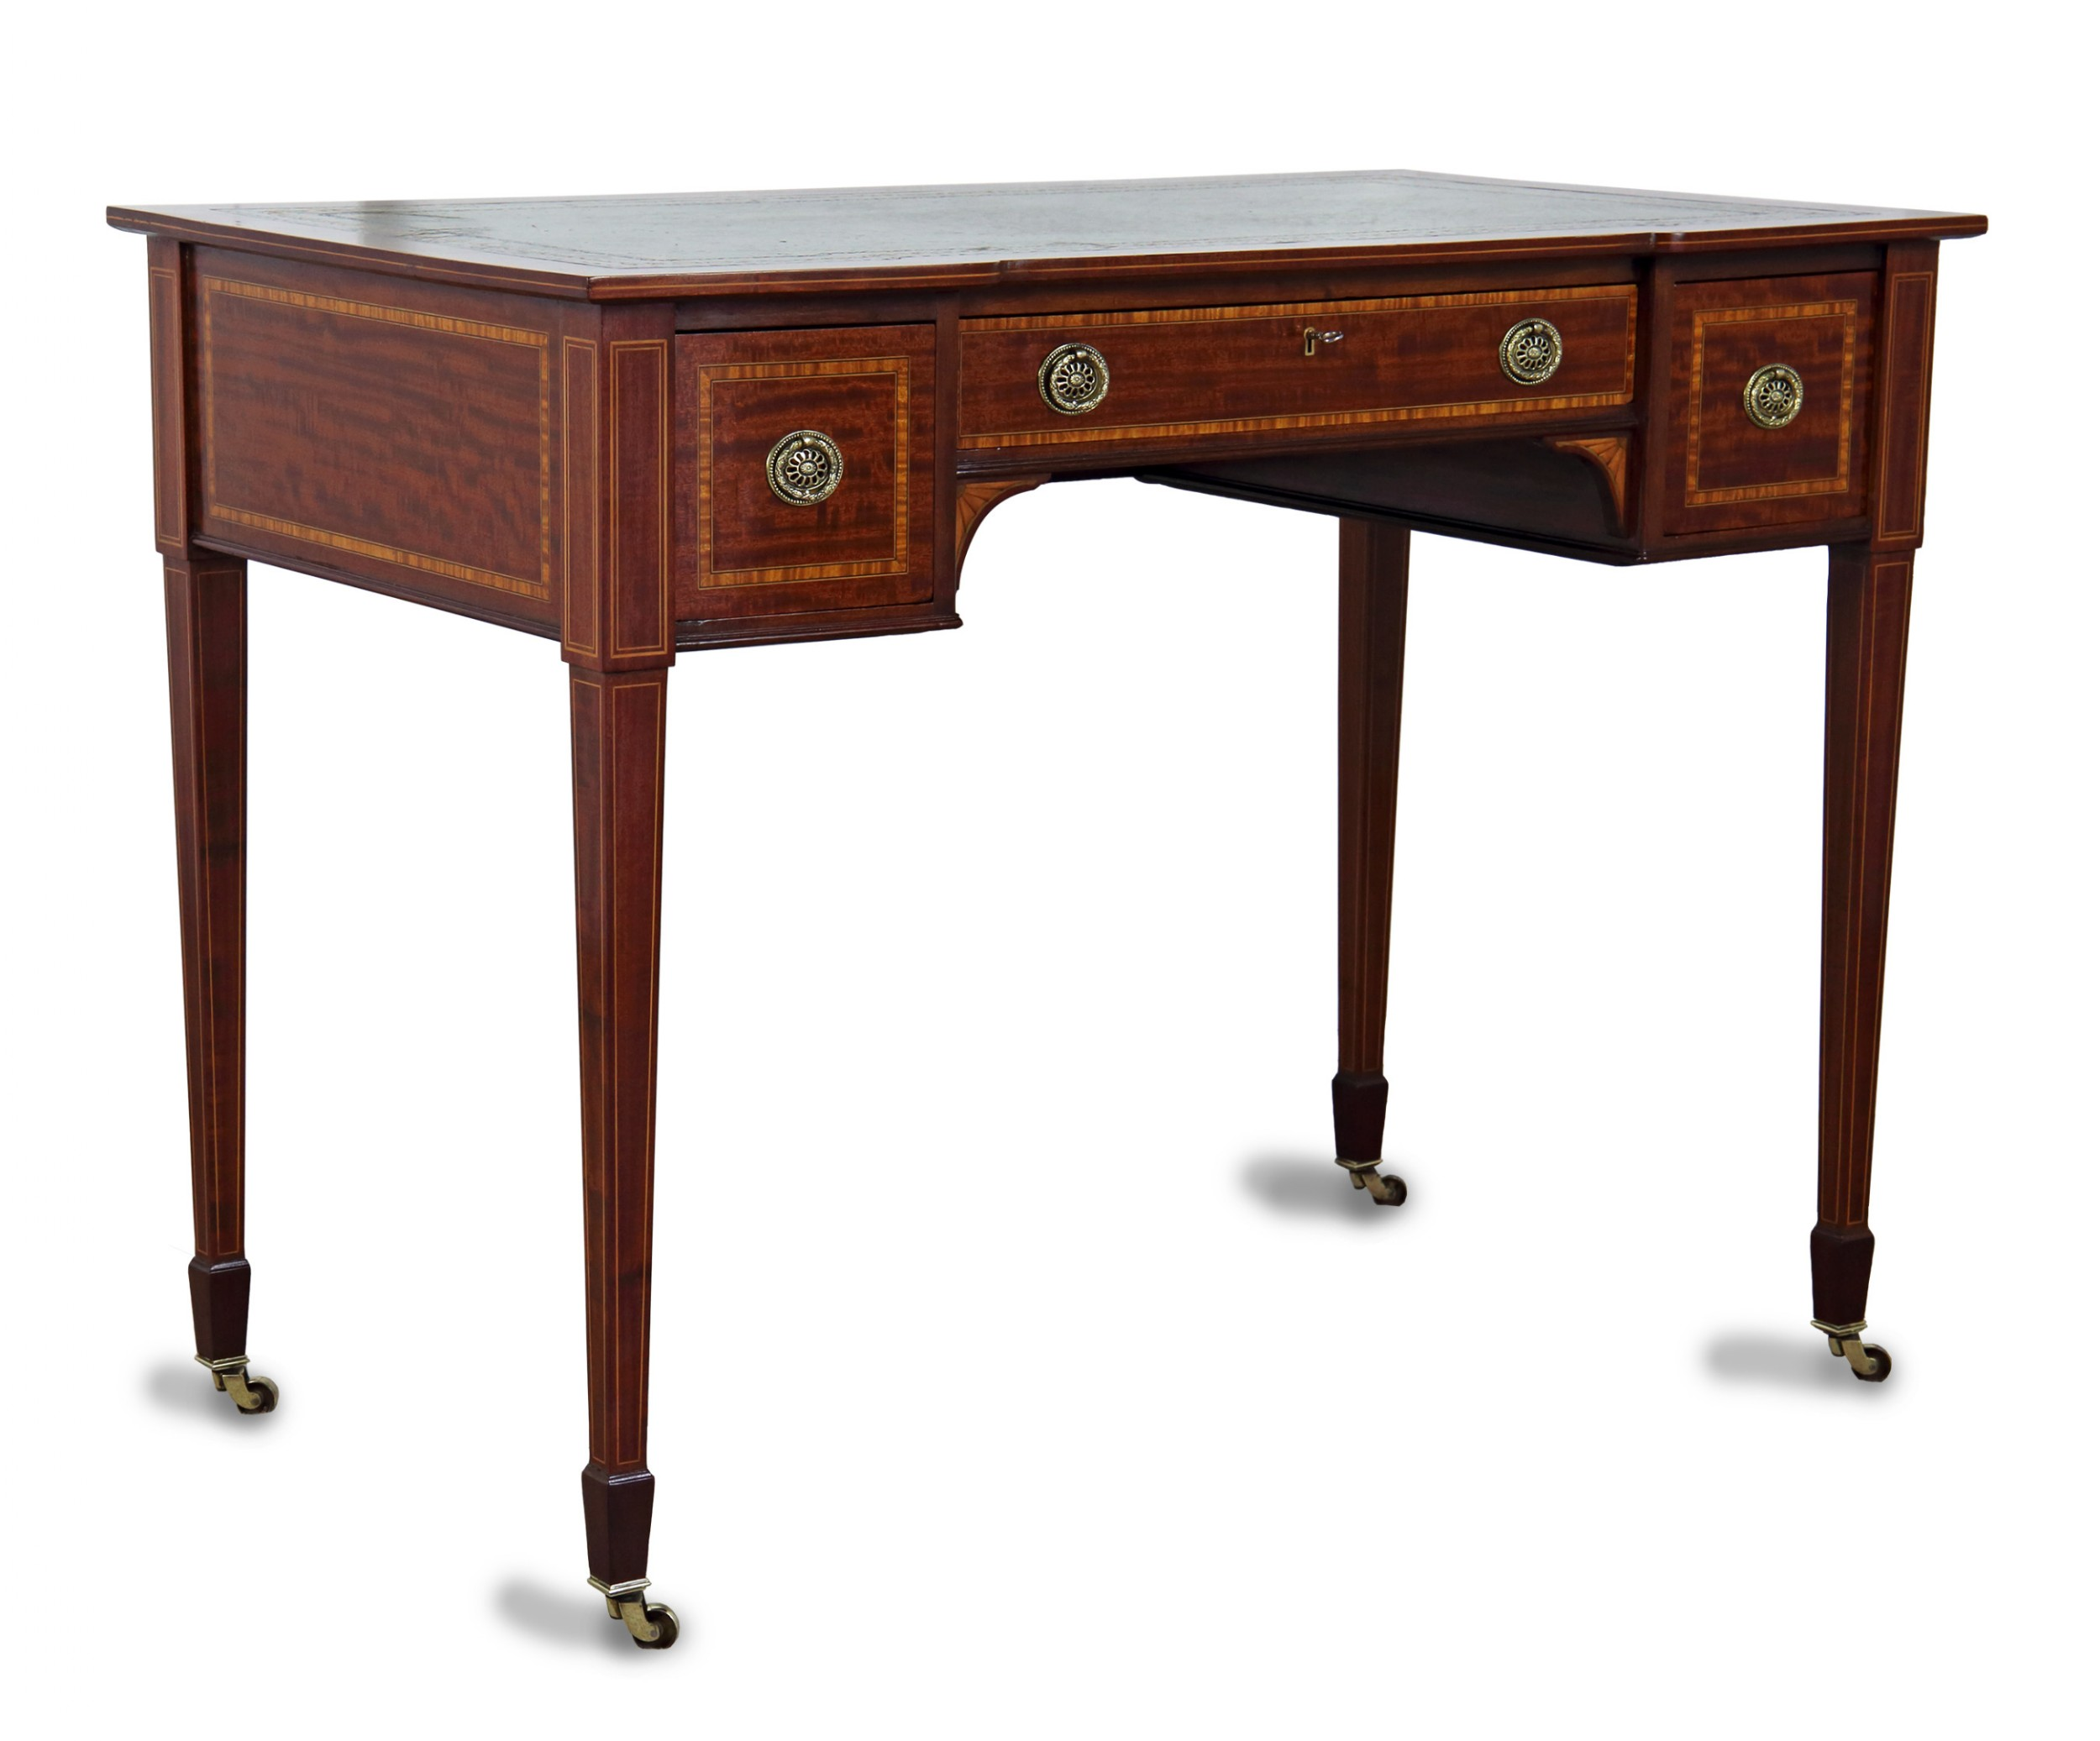 edwardian mahogany inlaid writing table